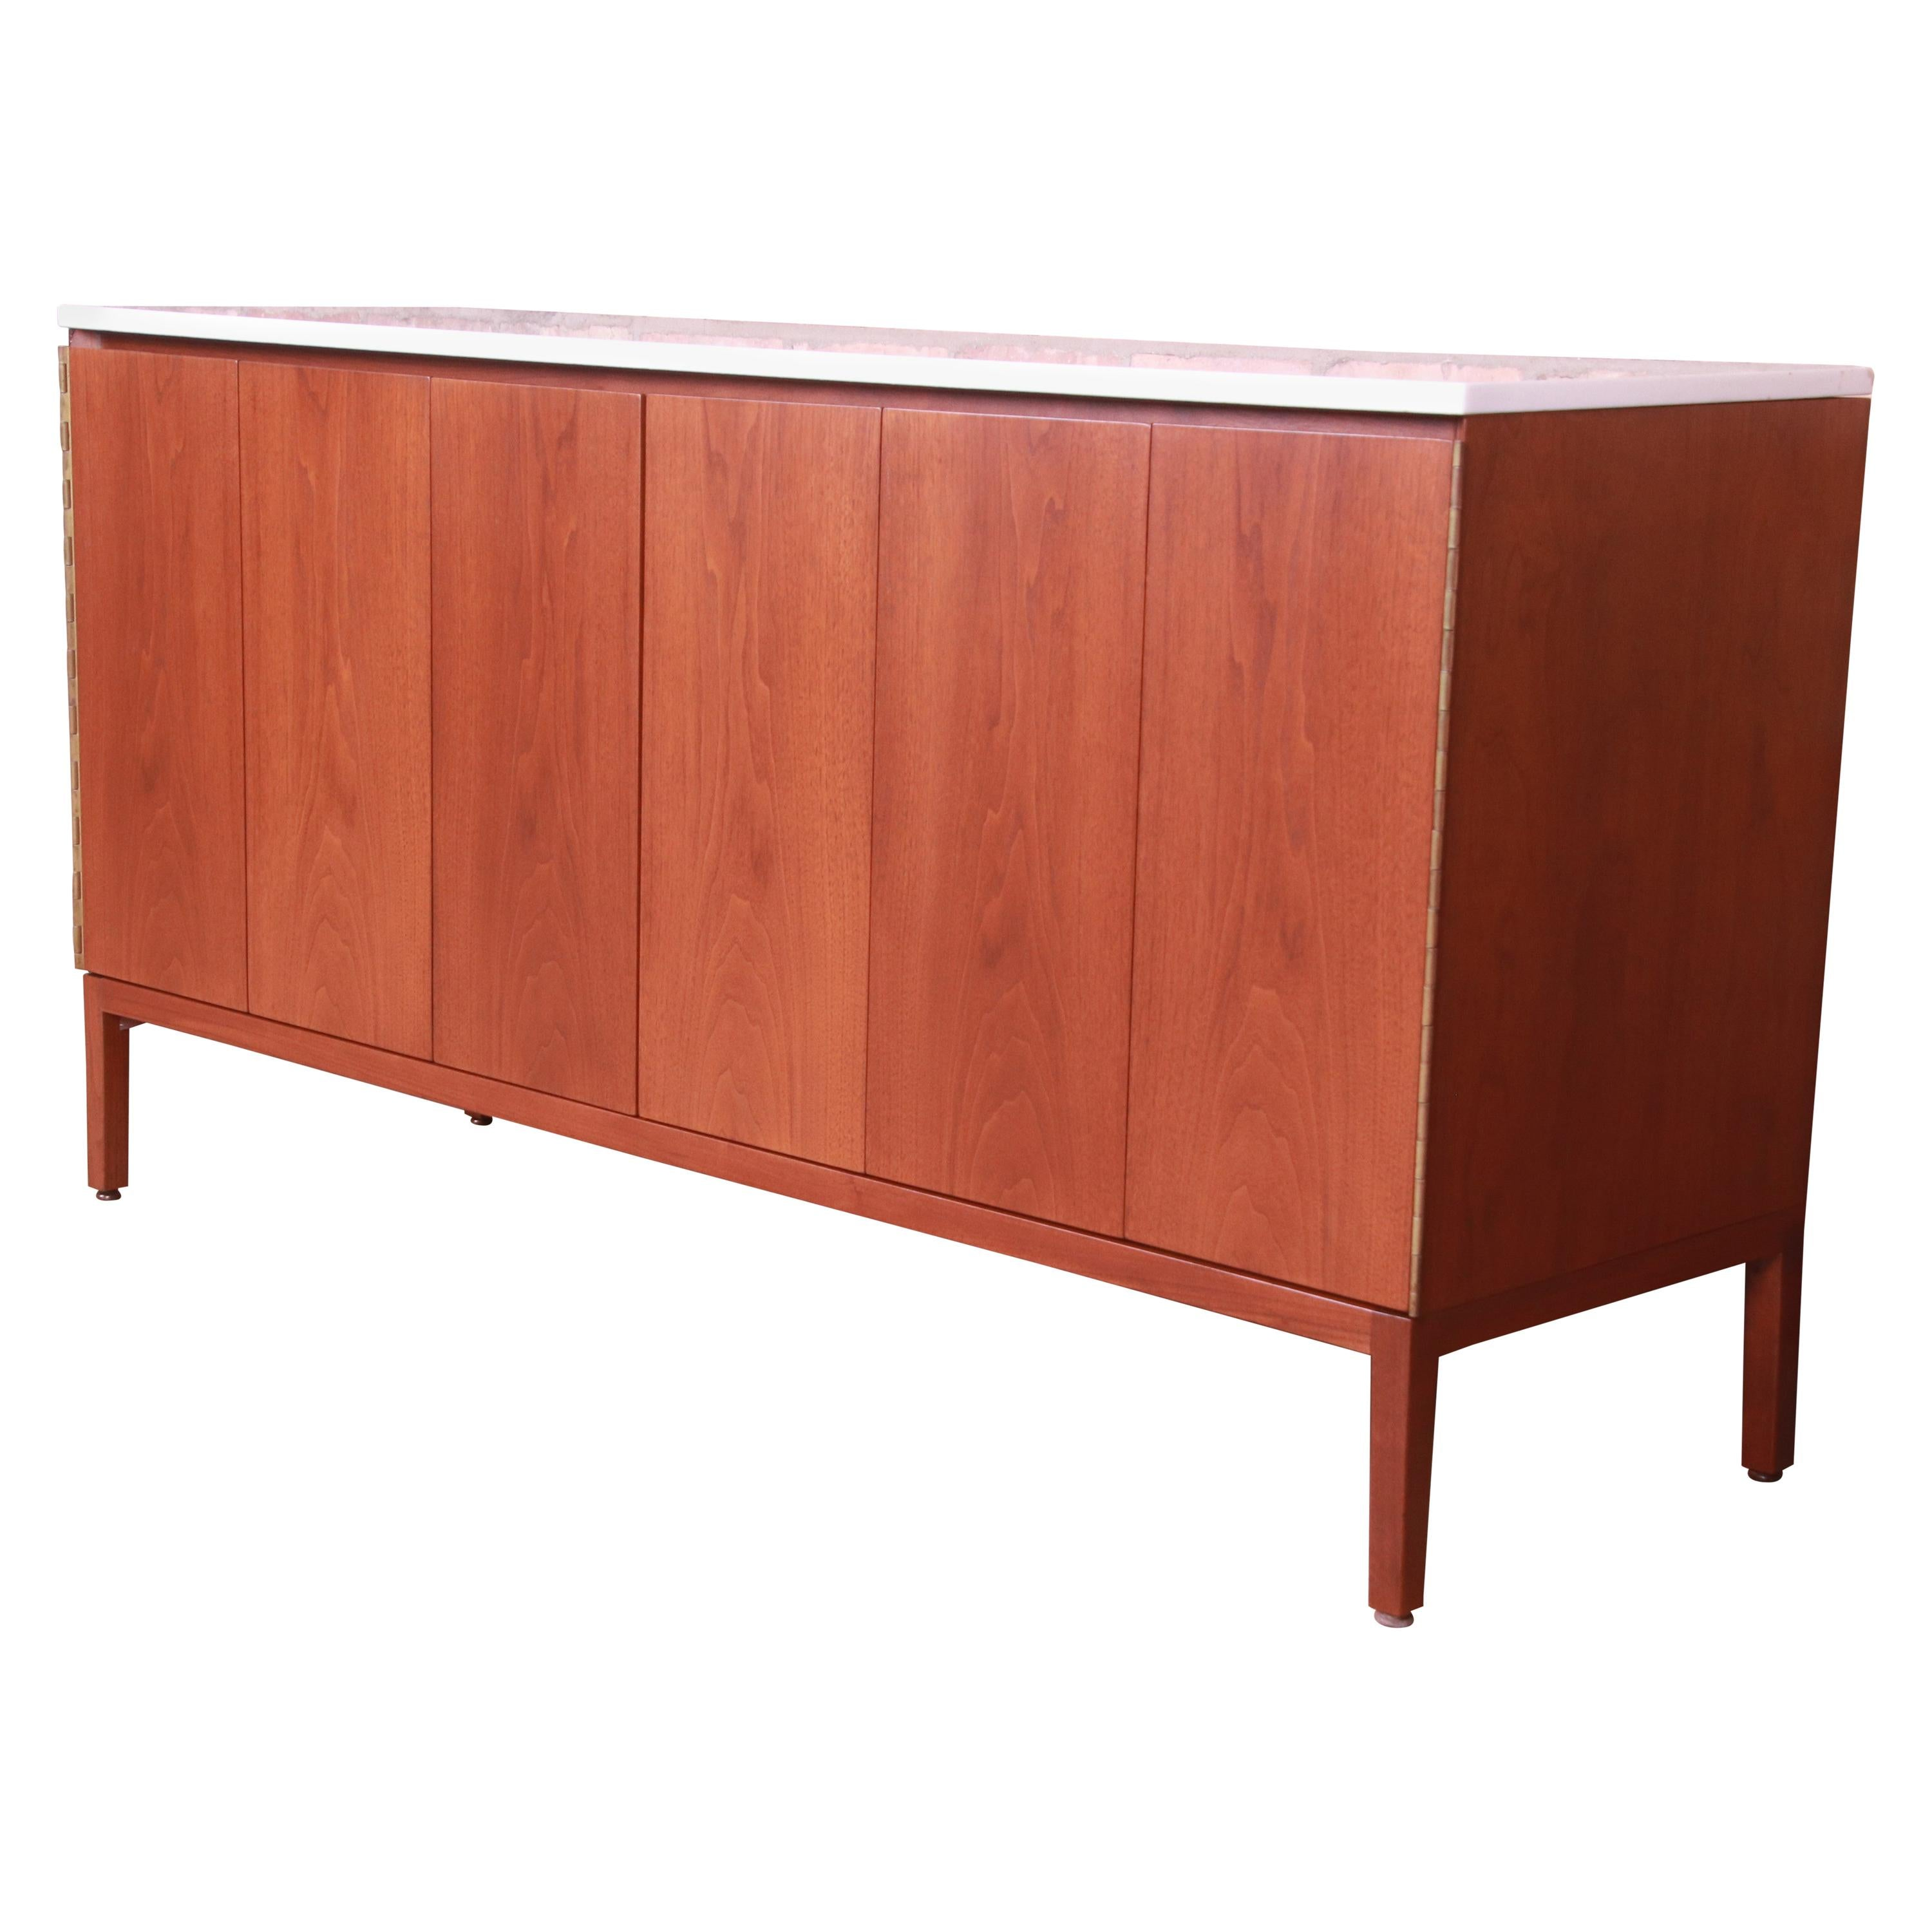 Paul McCobb for Directional Mahogany Credenza or Bar Cabinet, Newly Refinished